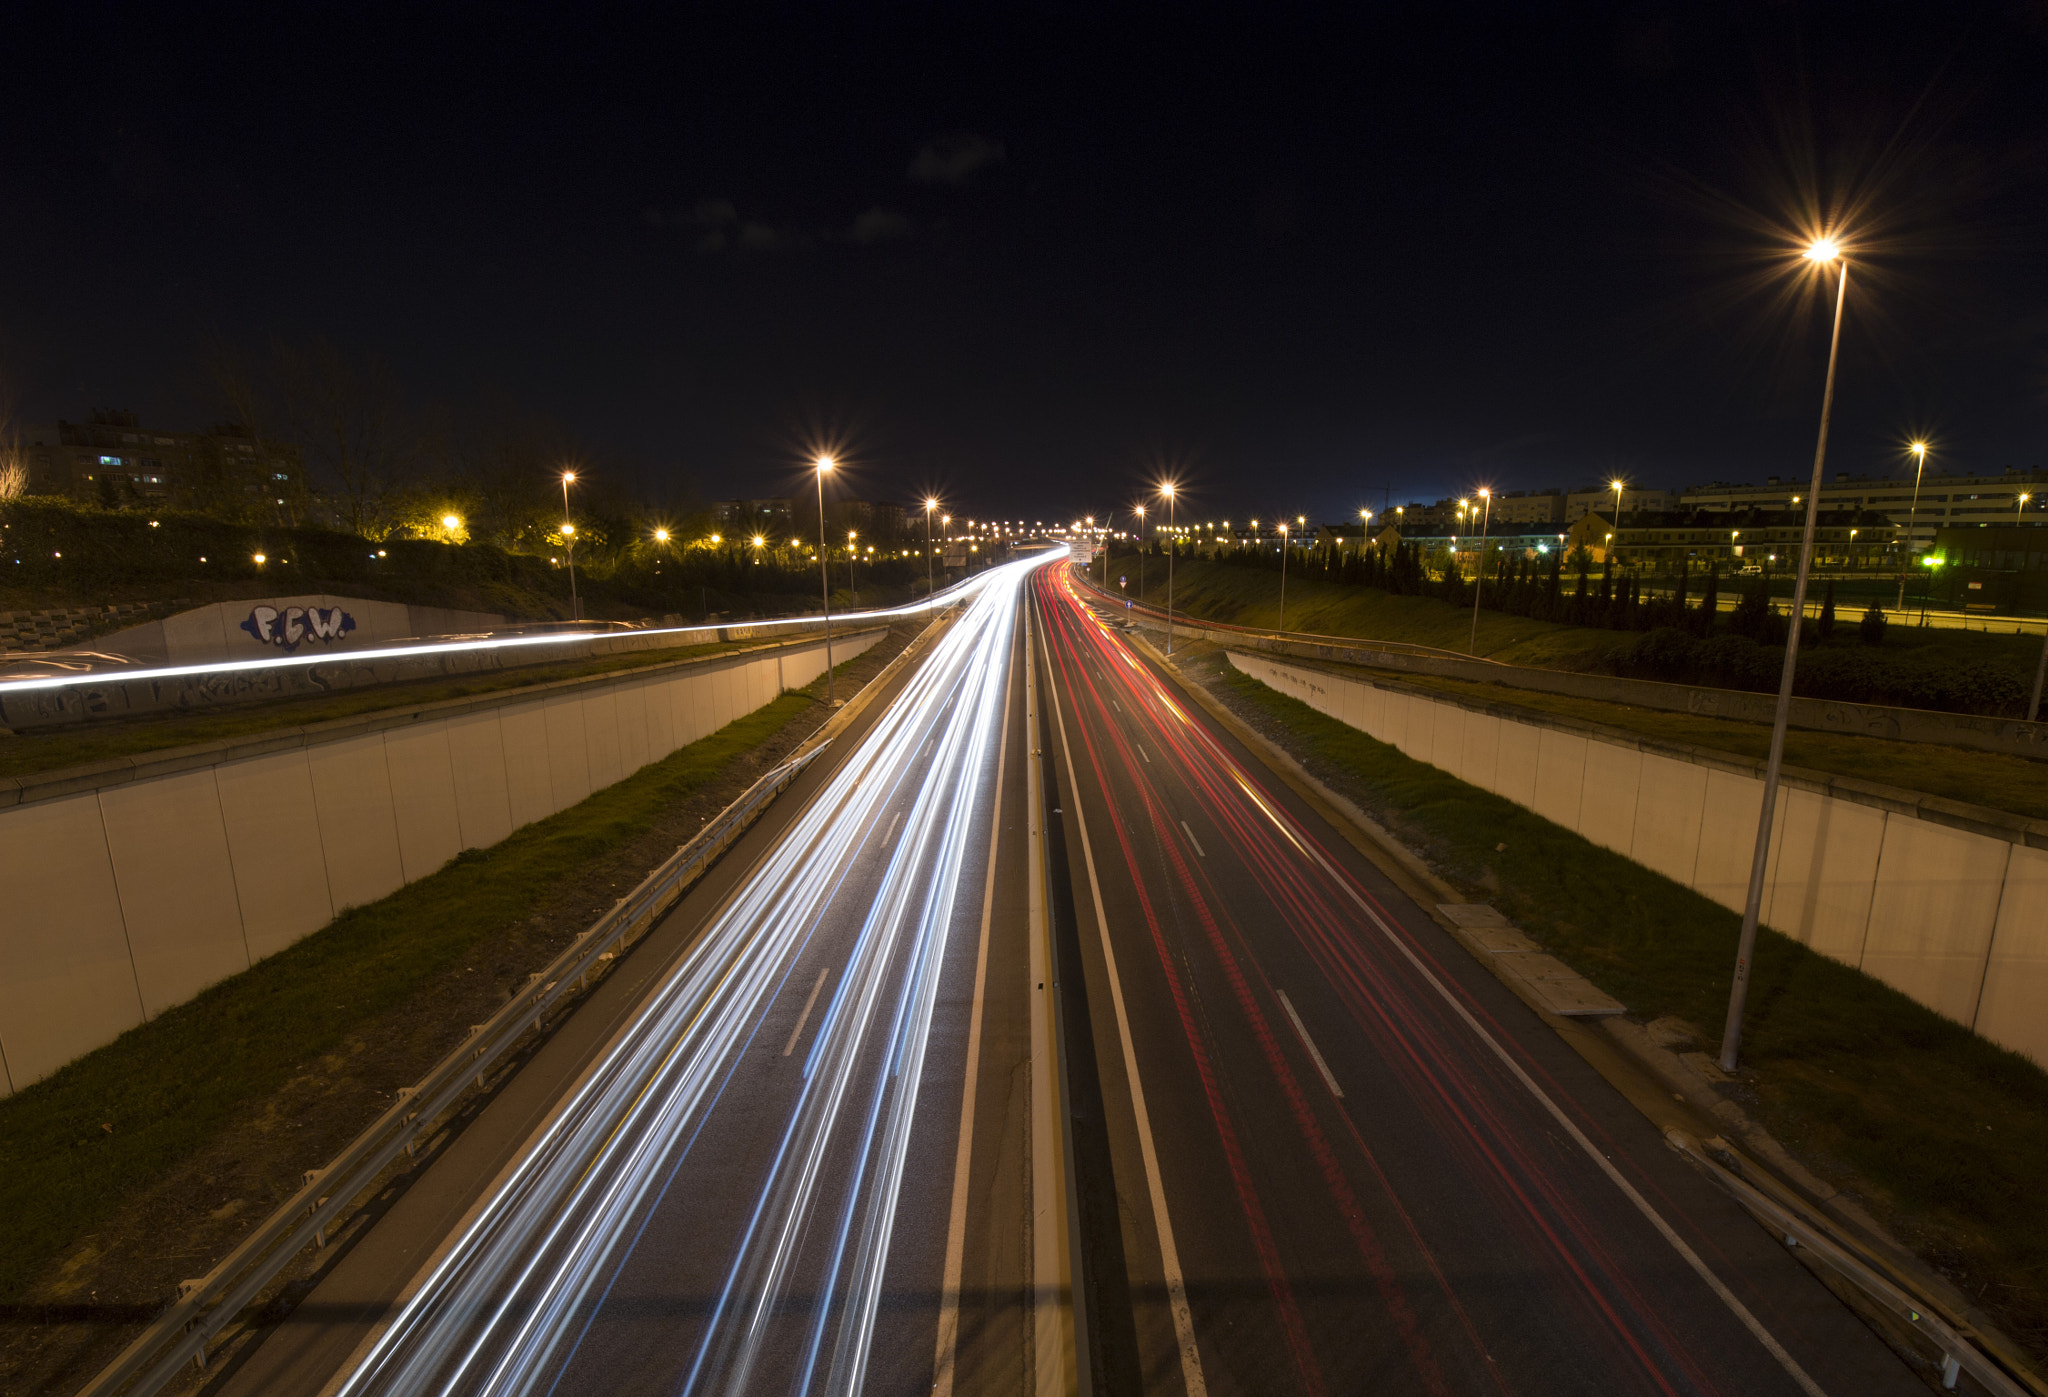 Photograph Threads of light on the road by Enrique Gómez on 500px